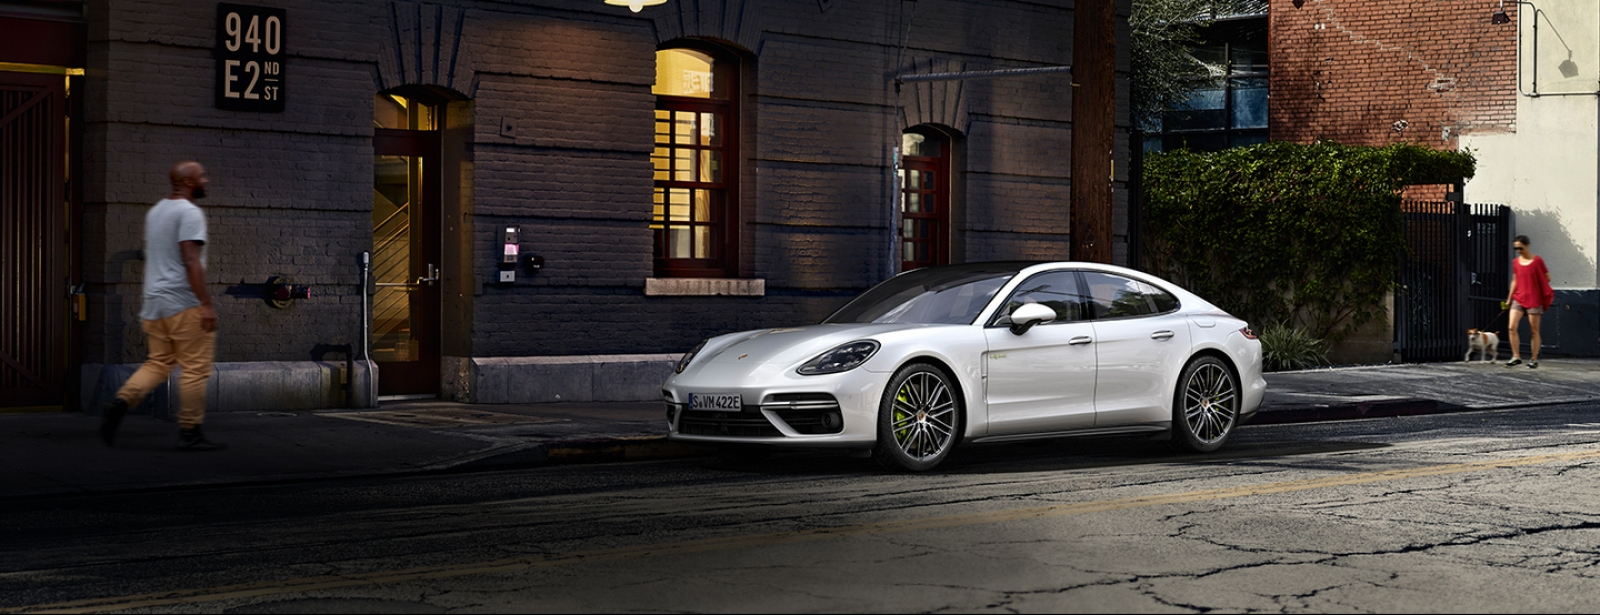 Porsche - Naujais Panamera Turbo S E-Hybrid - Courage changes everything.